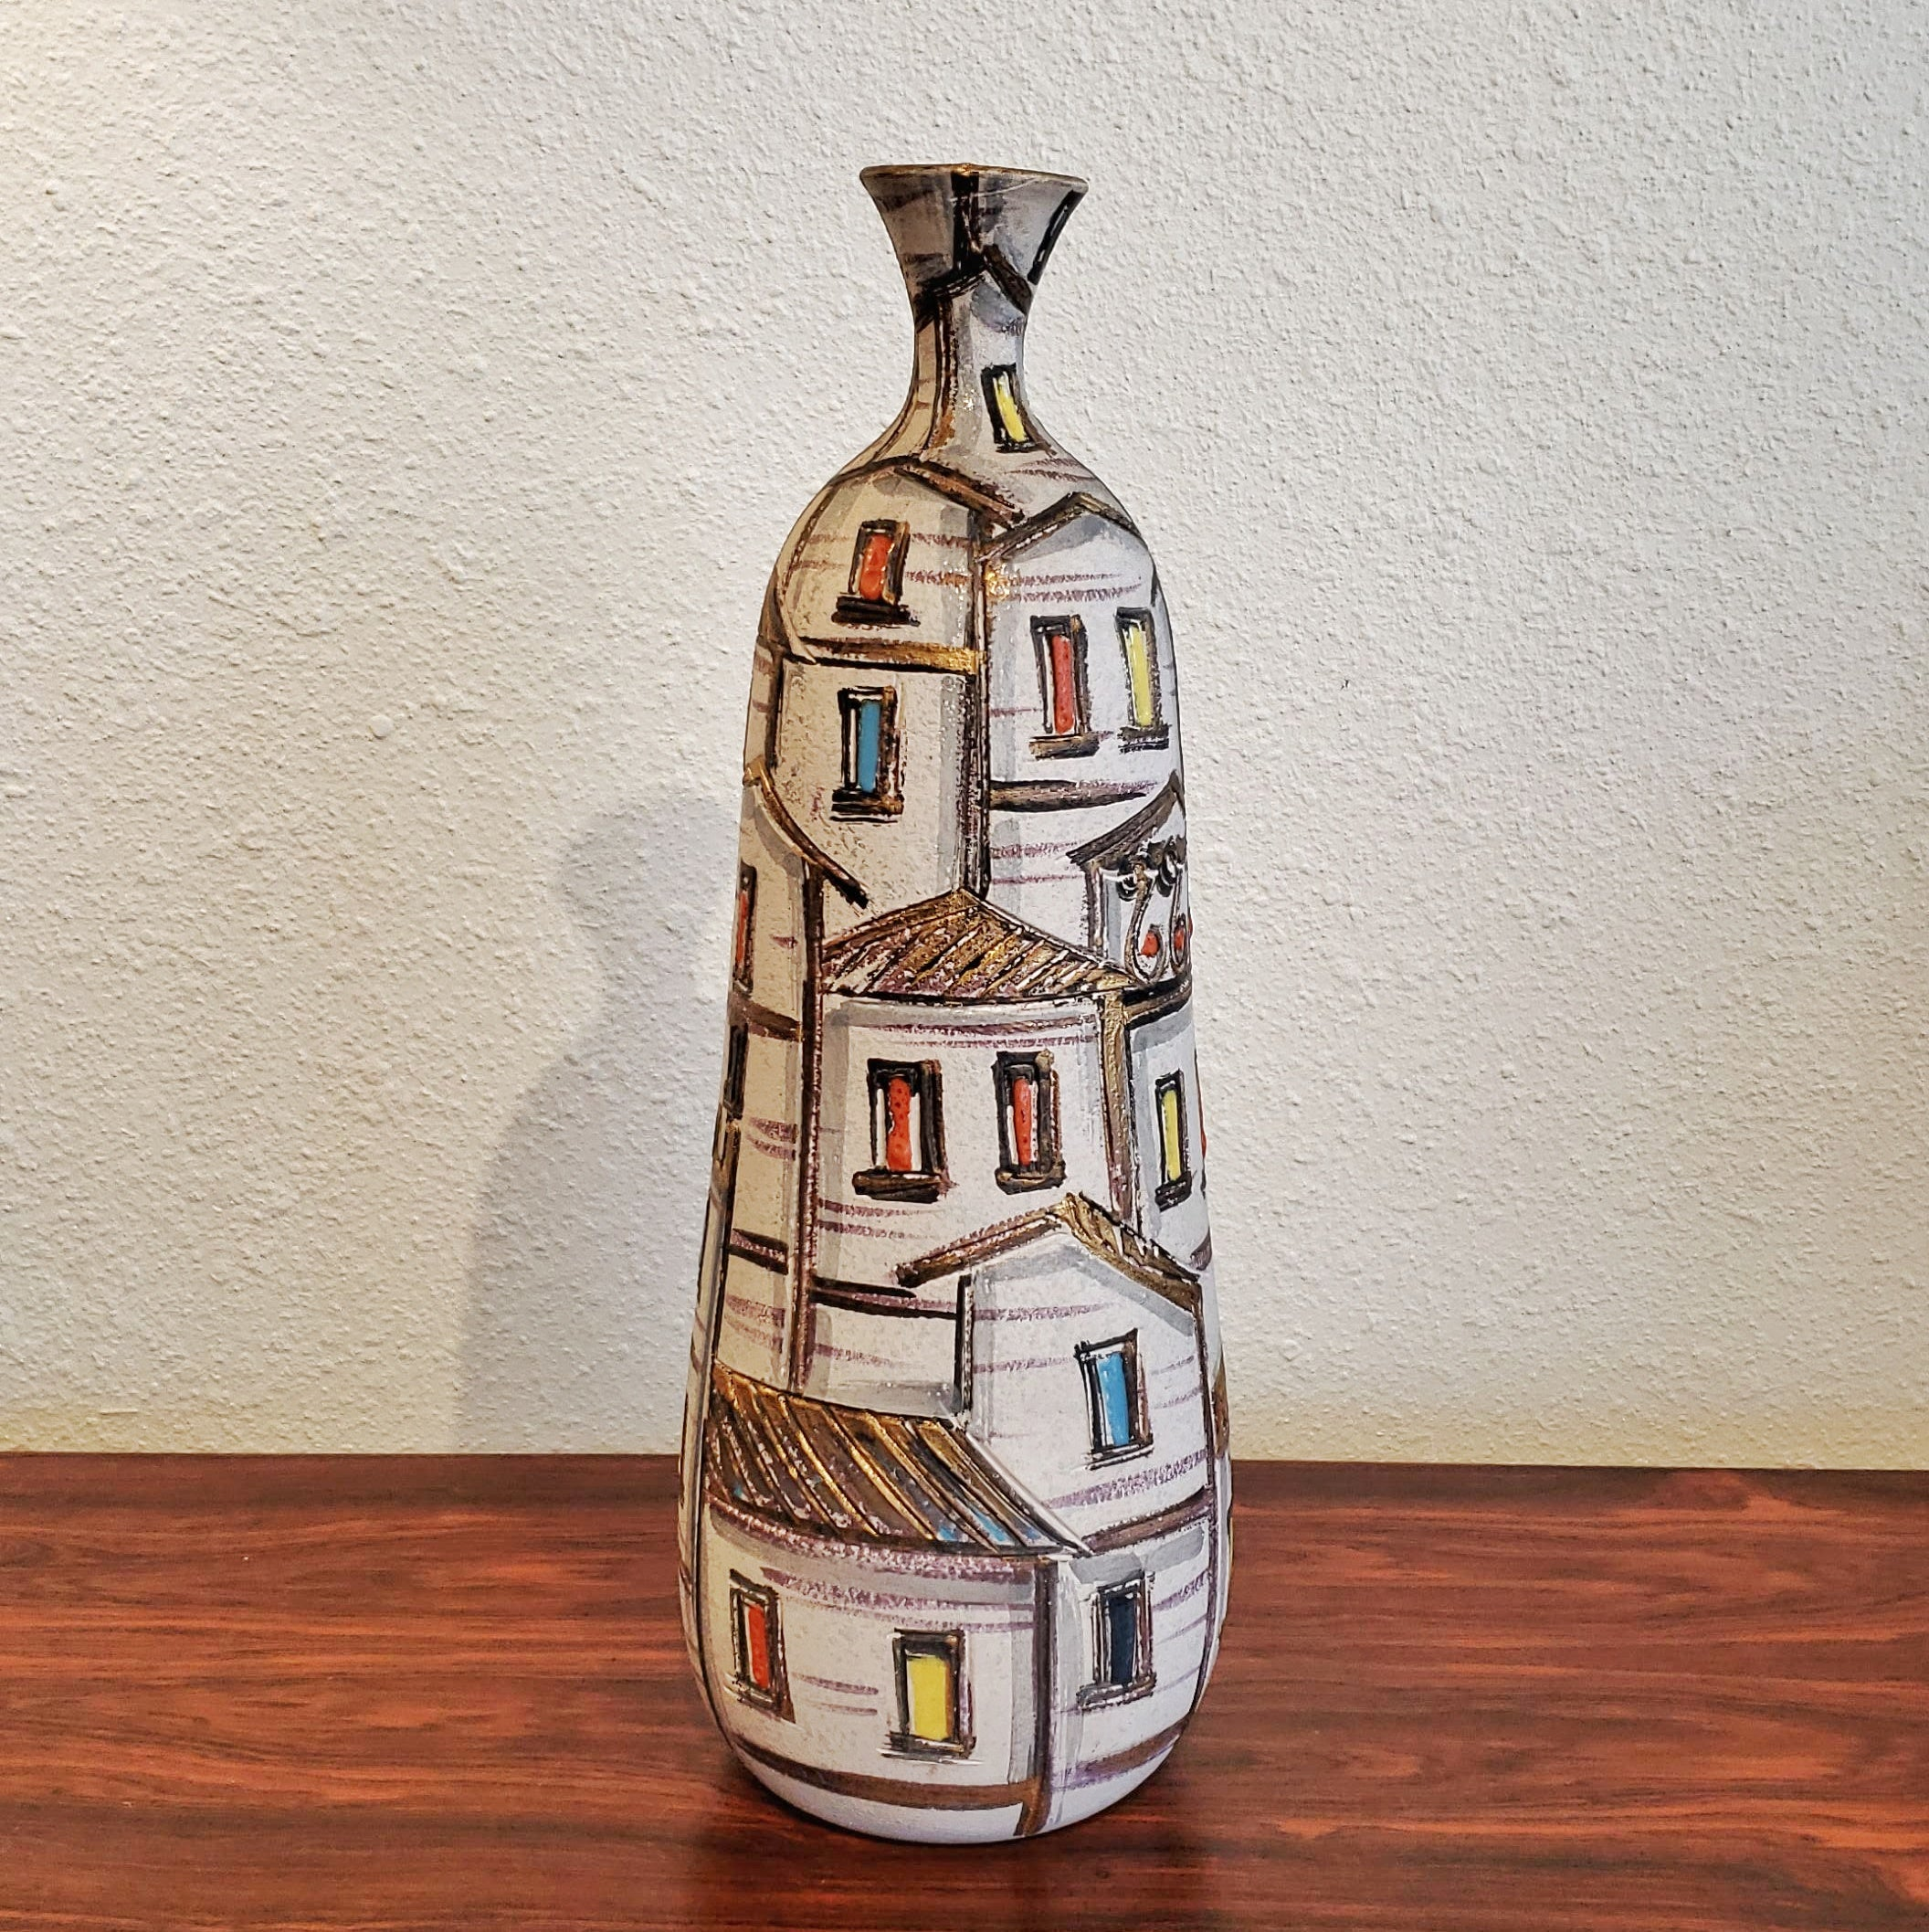 FRATELLI FANCIULLACCI 'ROOF TOPS' DECOR BOTTLE VASE (ITALY) (A)